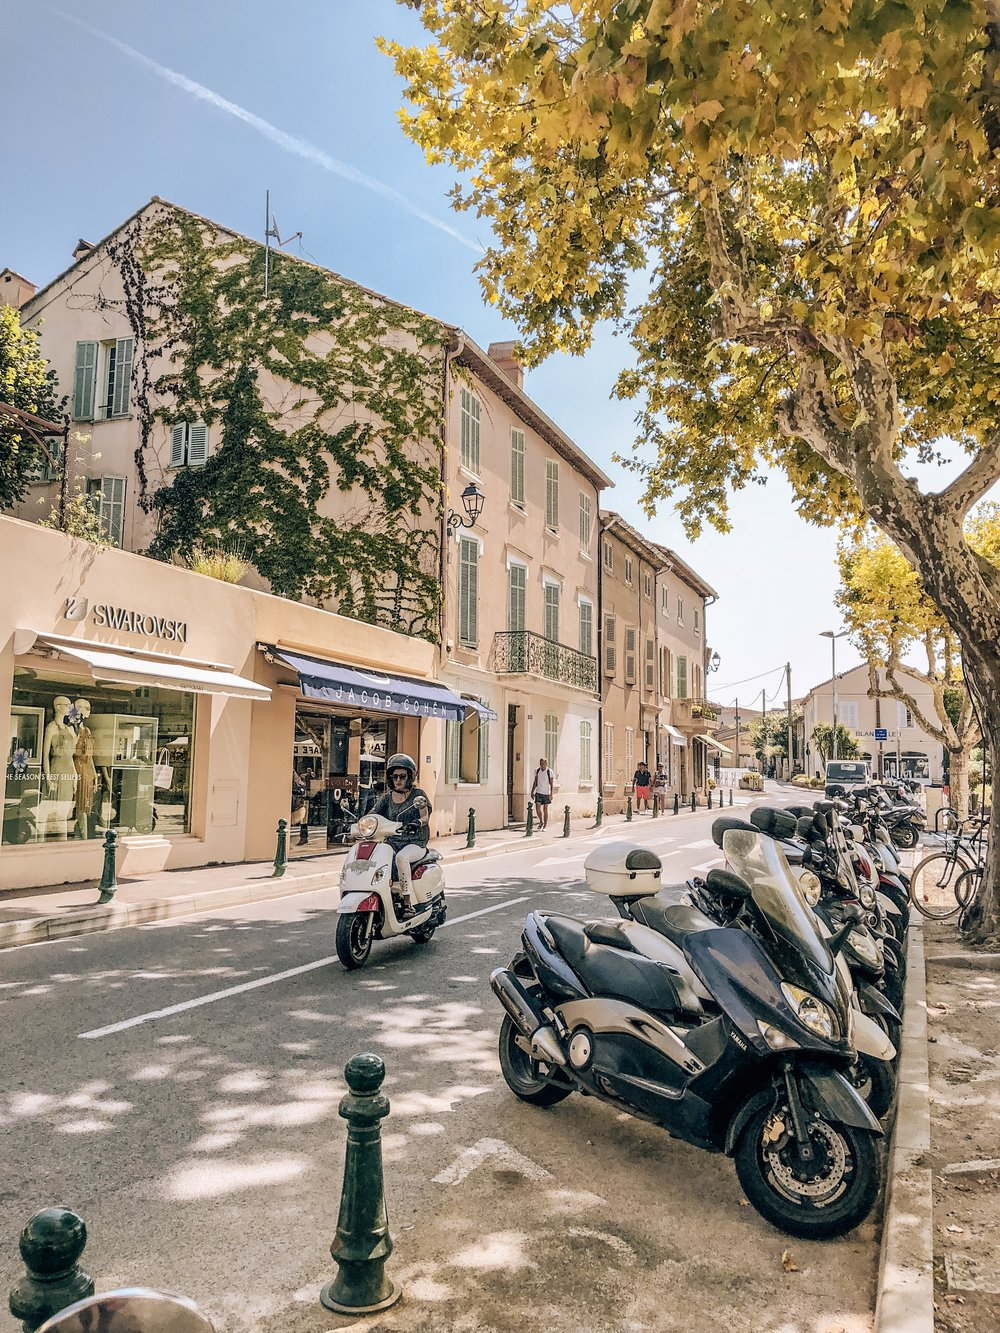 Travel tips for Saint-Tropez, south of France